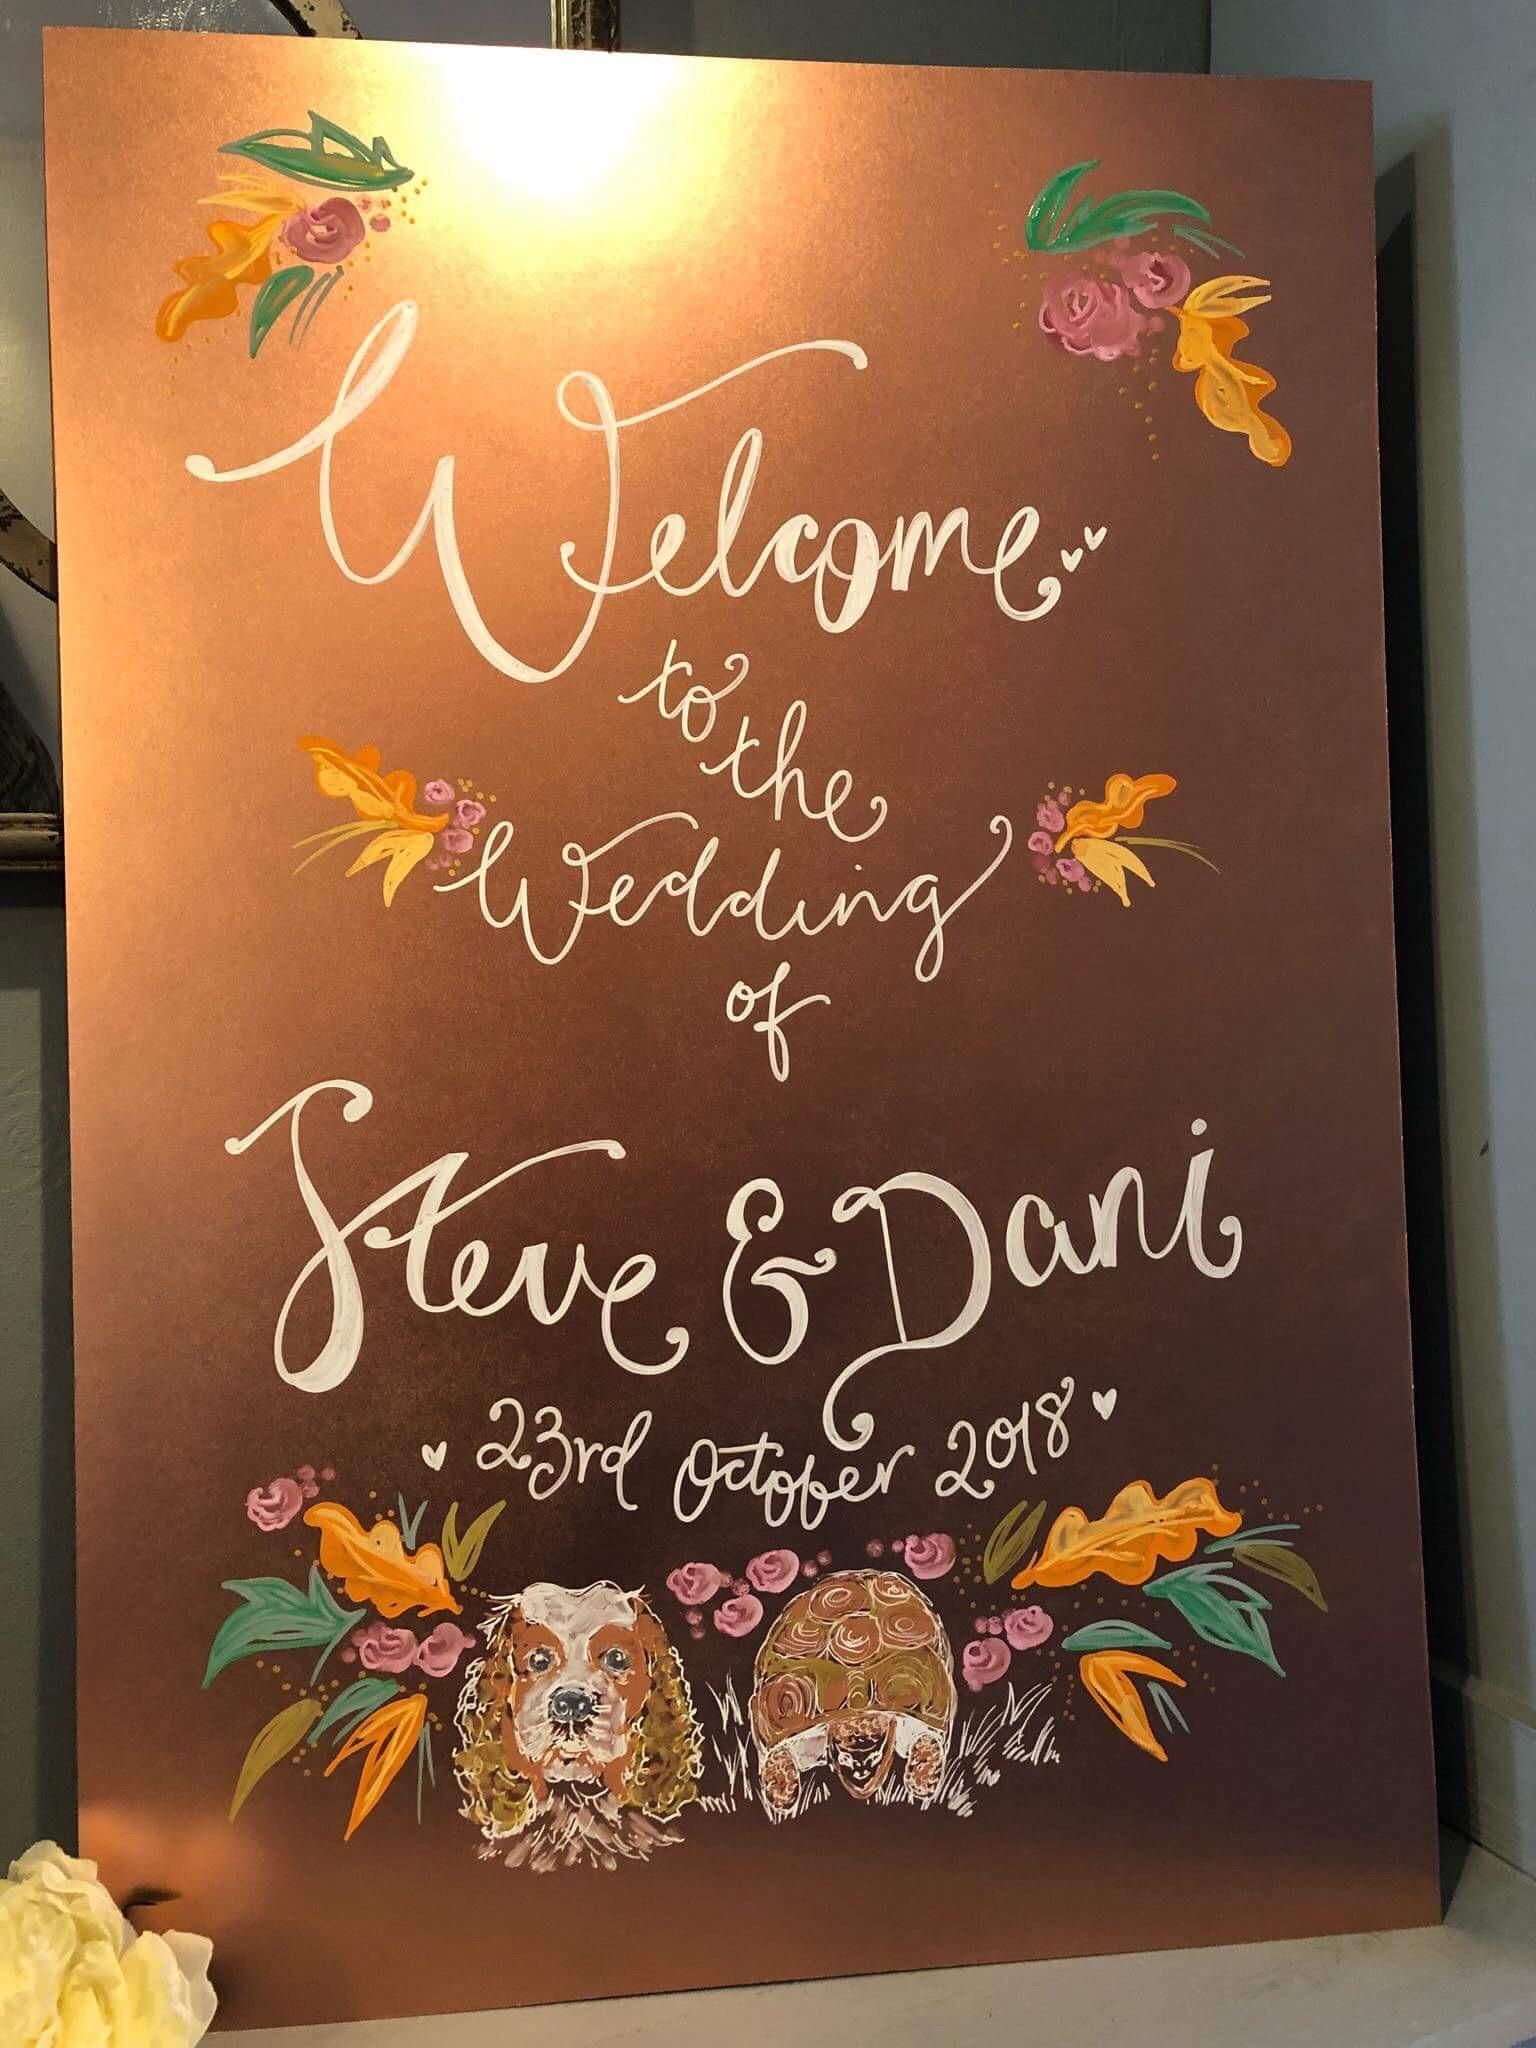 Wedding decorations reception october 2018 Our wedding signage has been made and Im SO in love it even has